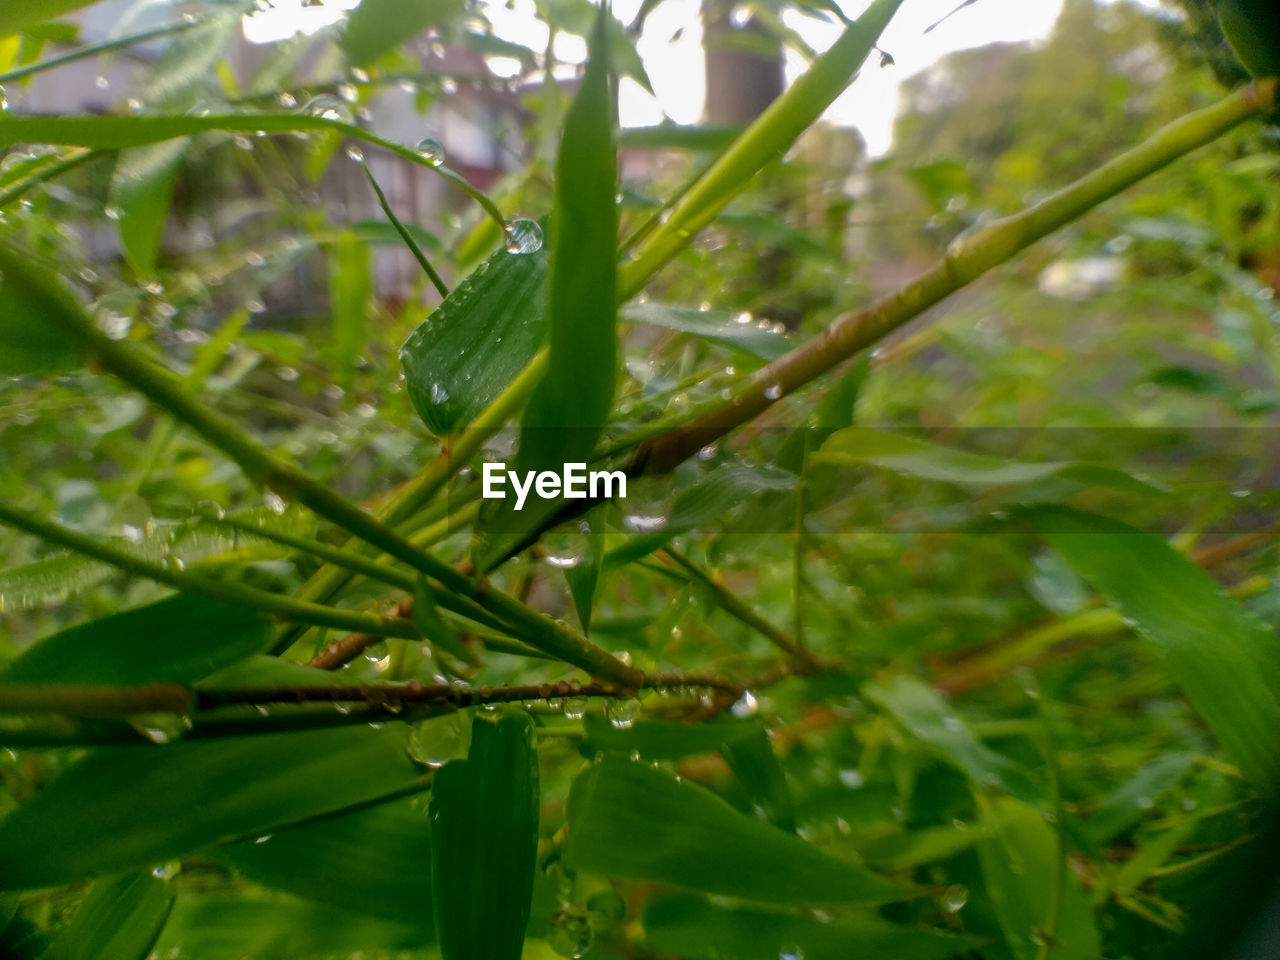 plant, growth, green color, plant part, leaf, beauty in nature, drop, nature, water, close-up, wet, day, no people, focus on foreground, tranquility, tree, outdoors, selective focus, rain, raindrop, leaves, blade of grass, dew, rainy season, purity, bamboo - plant